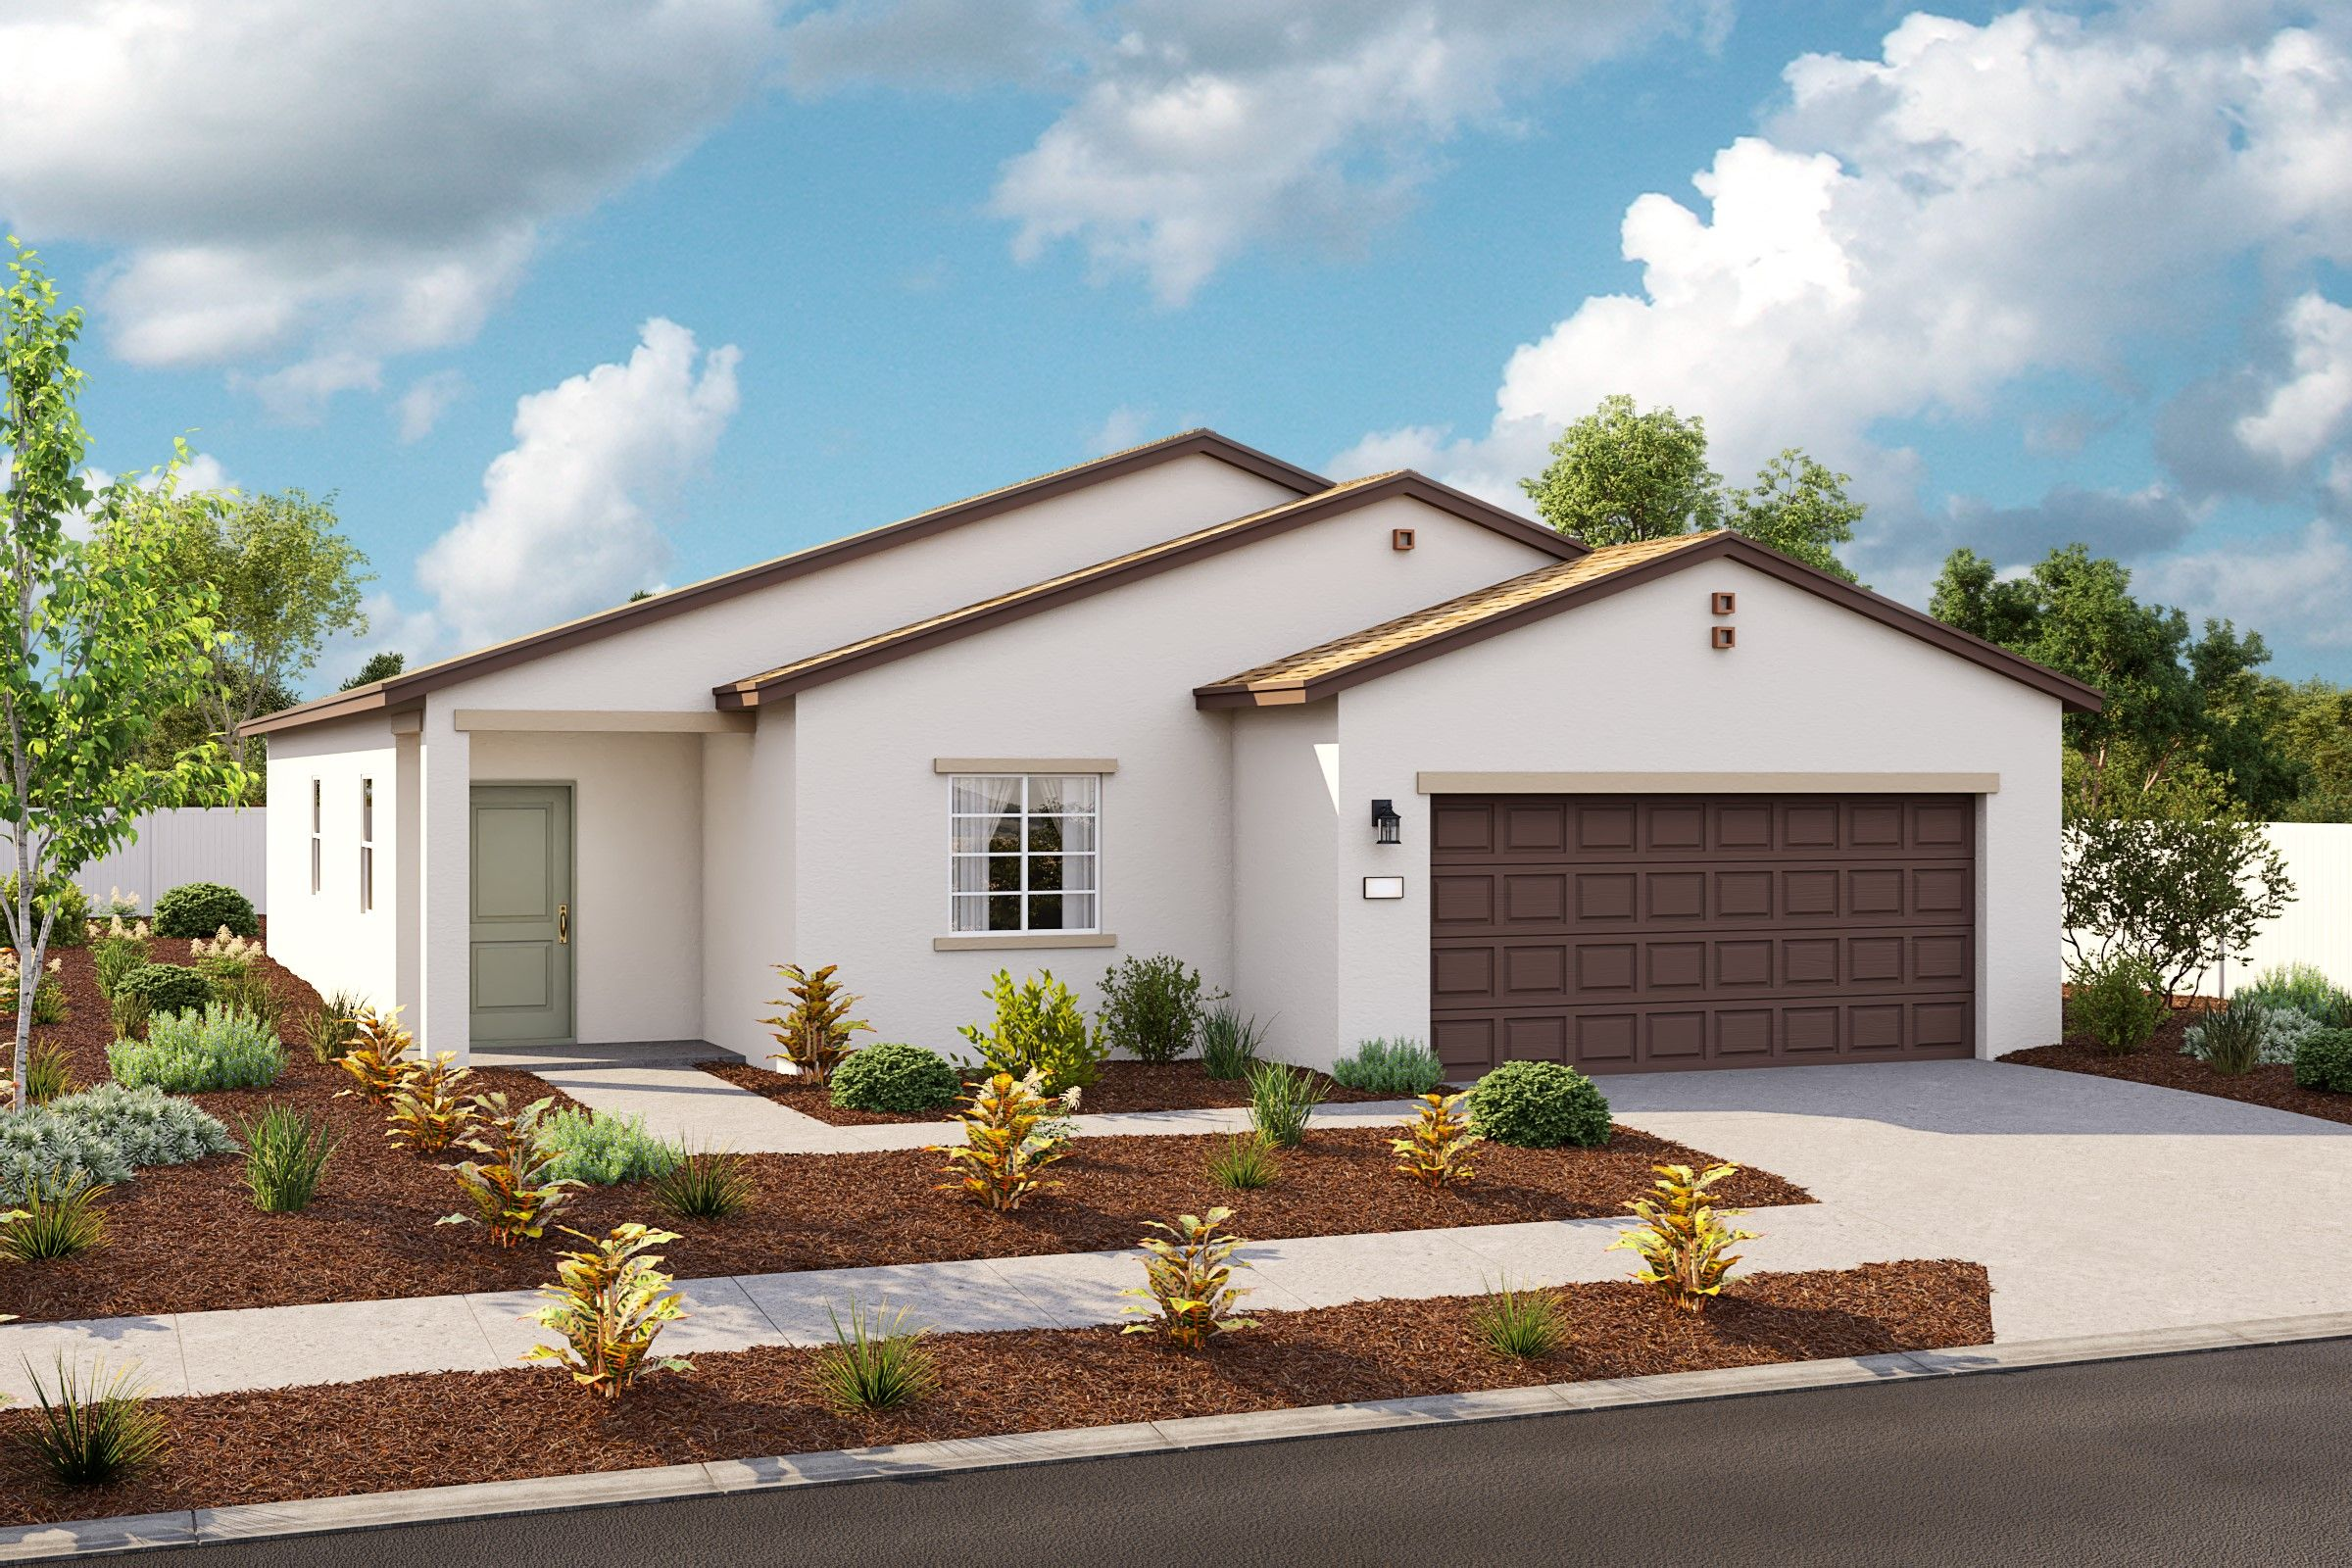 Single Family for Active at Aspire At Garden Glen - Juniper Jasmine Drive & Luther Road Live Oak, California 95953 United States